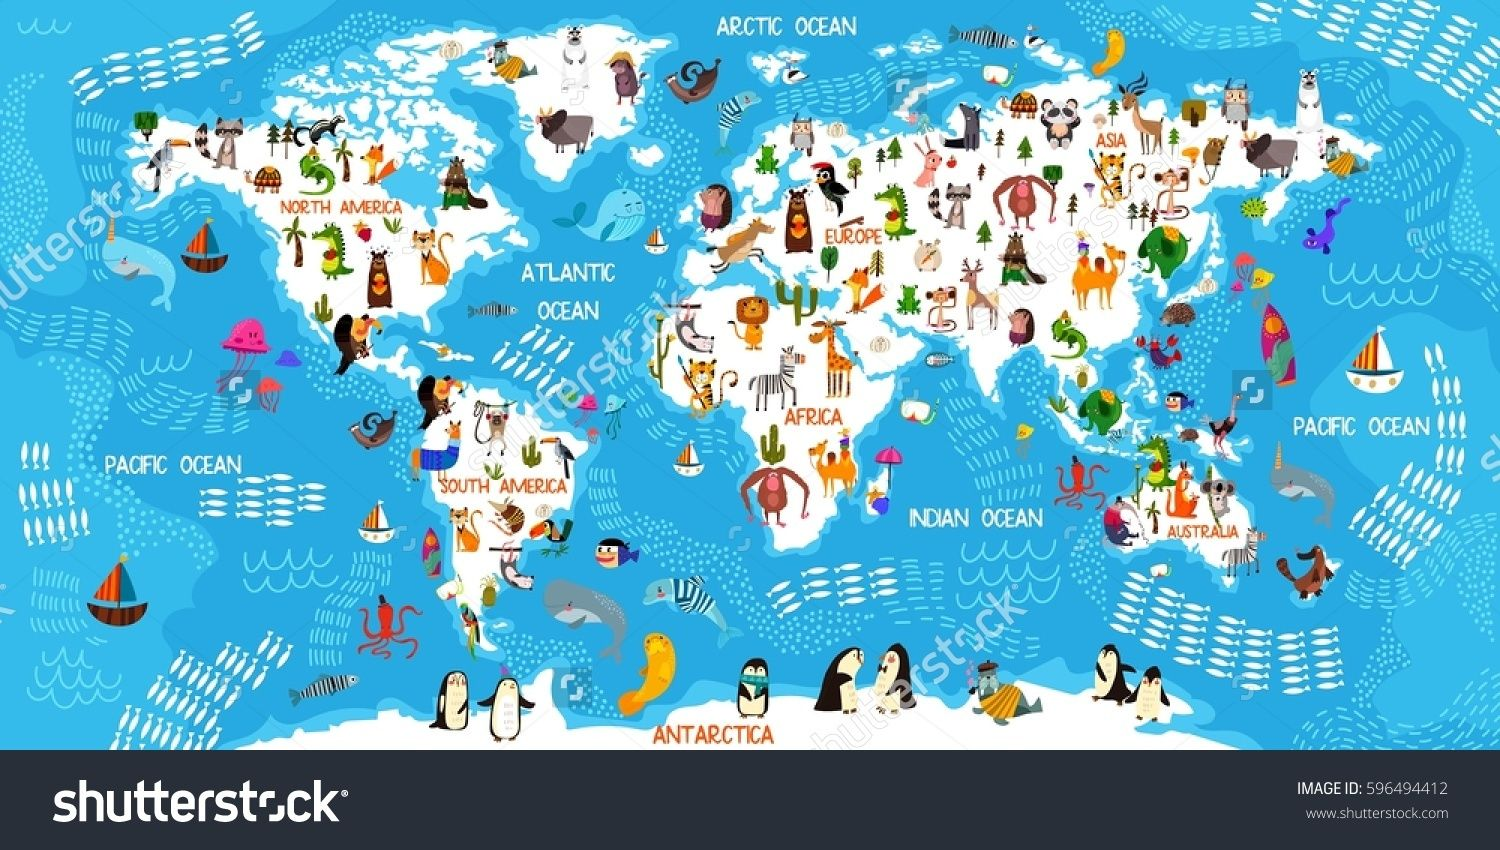 Cartoon animal world map animals from all over the worldoceans cartoon animal world map animals from all over the worldoceans and continentseat for kids designeducational gamemagnet or poster design vector gumiabroncs Choice Image